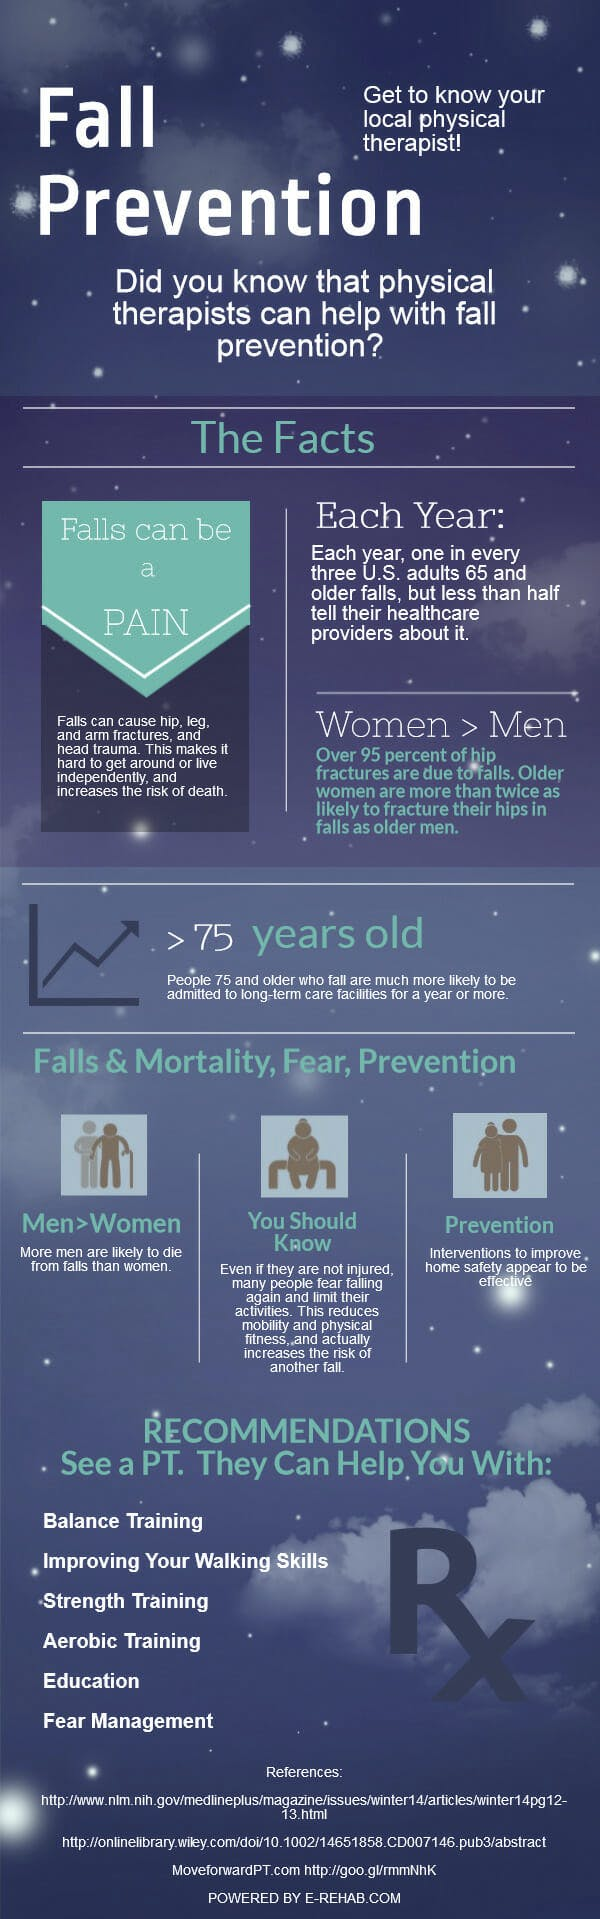 Fall Prevention is a good PR activity for the physical therapy marketing plan.